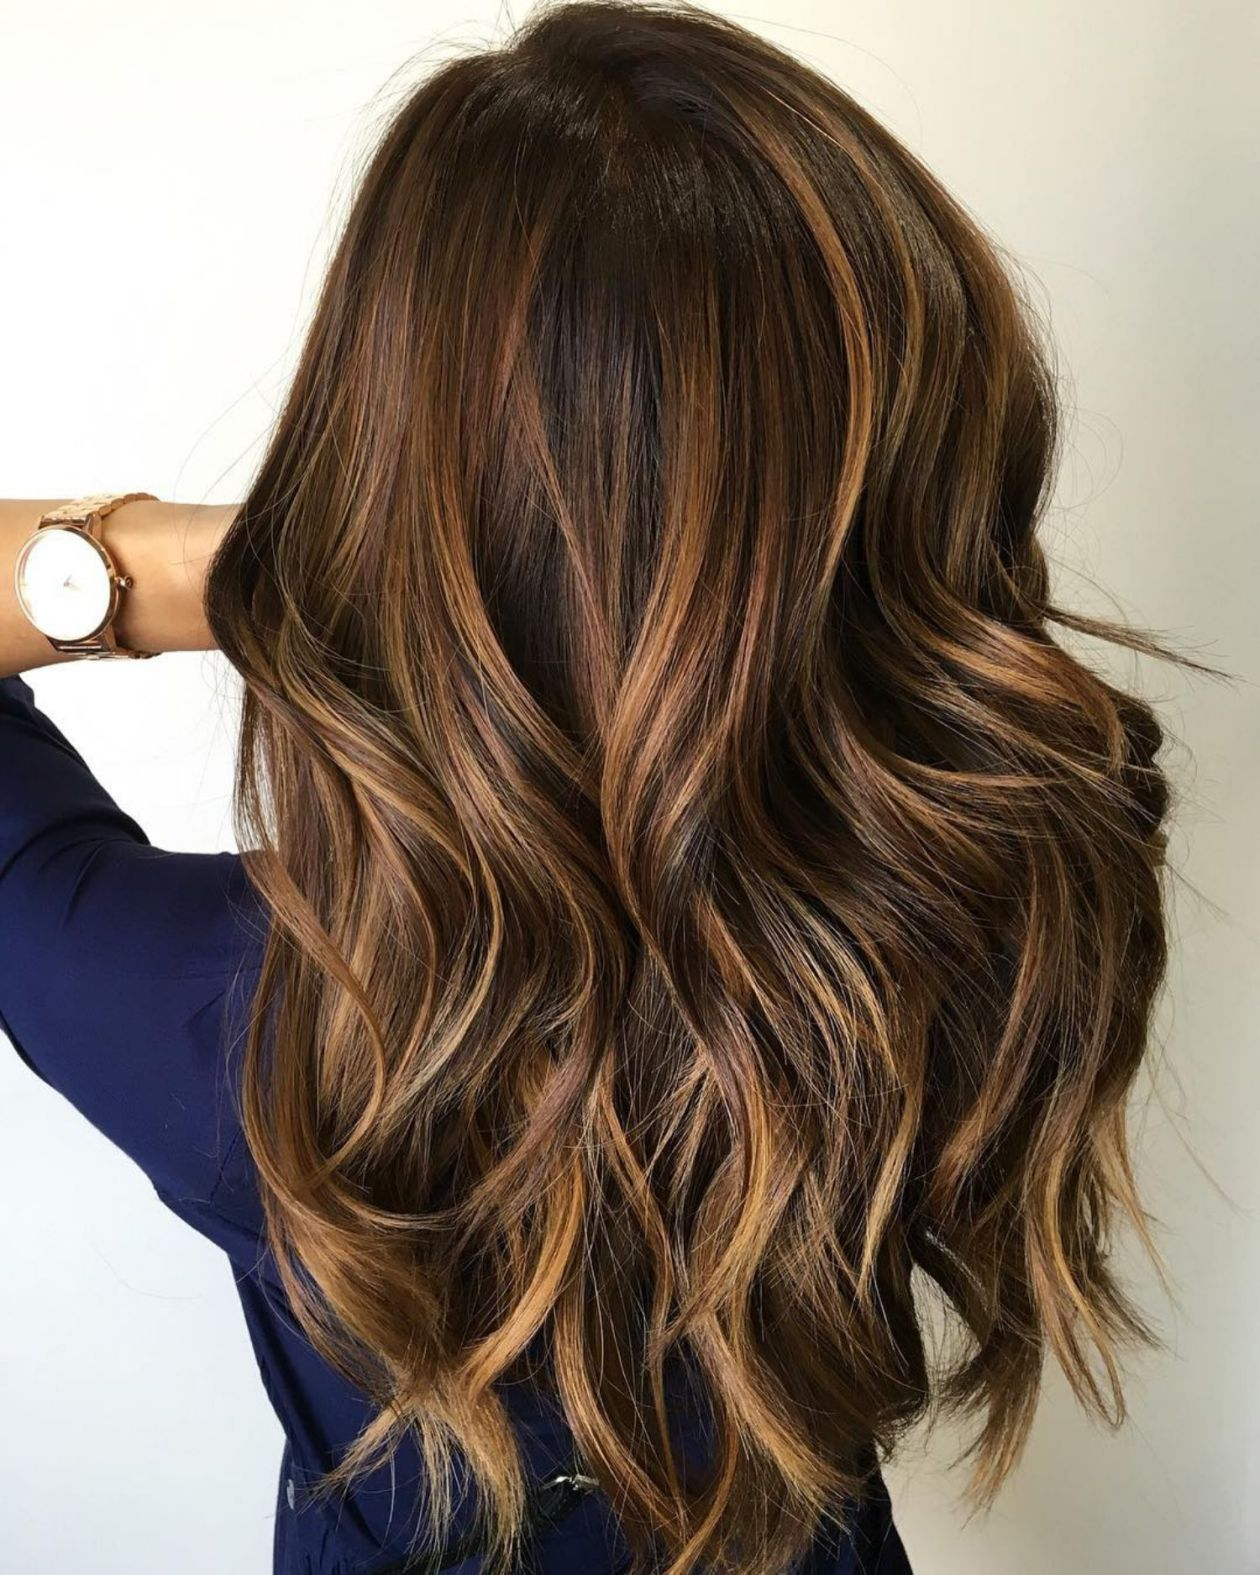 60 Hairstyles Featuring Dark Brown Hair With Highlights Brown Hair With Highlights Hair Highlights Hair Styles